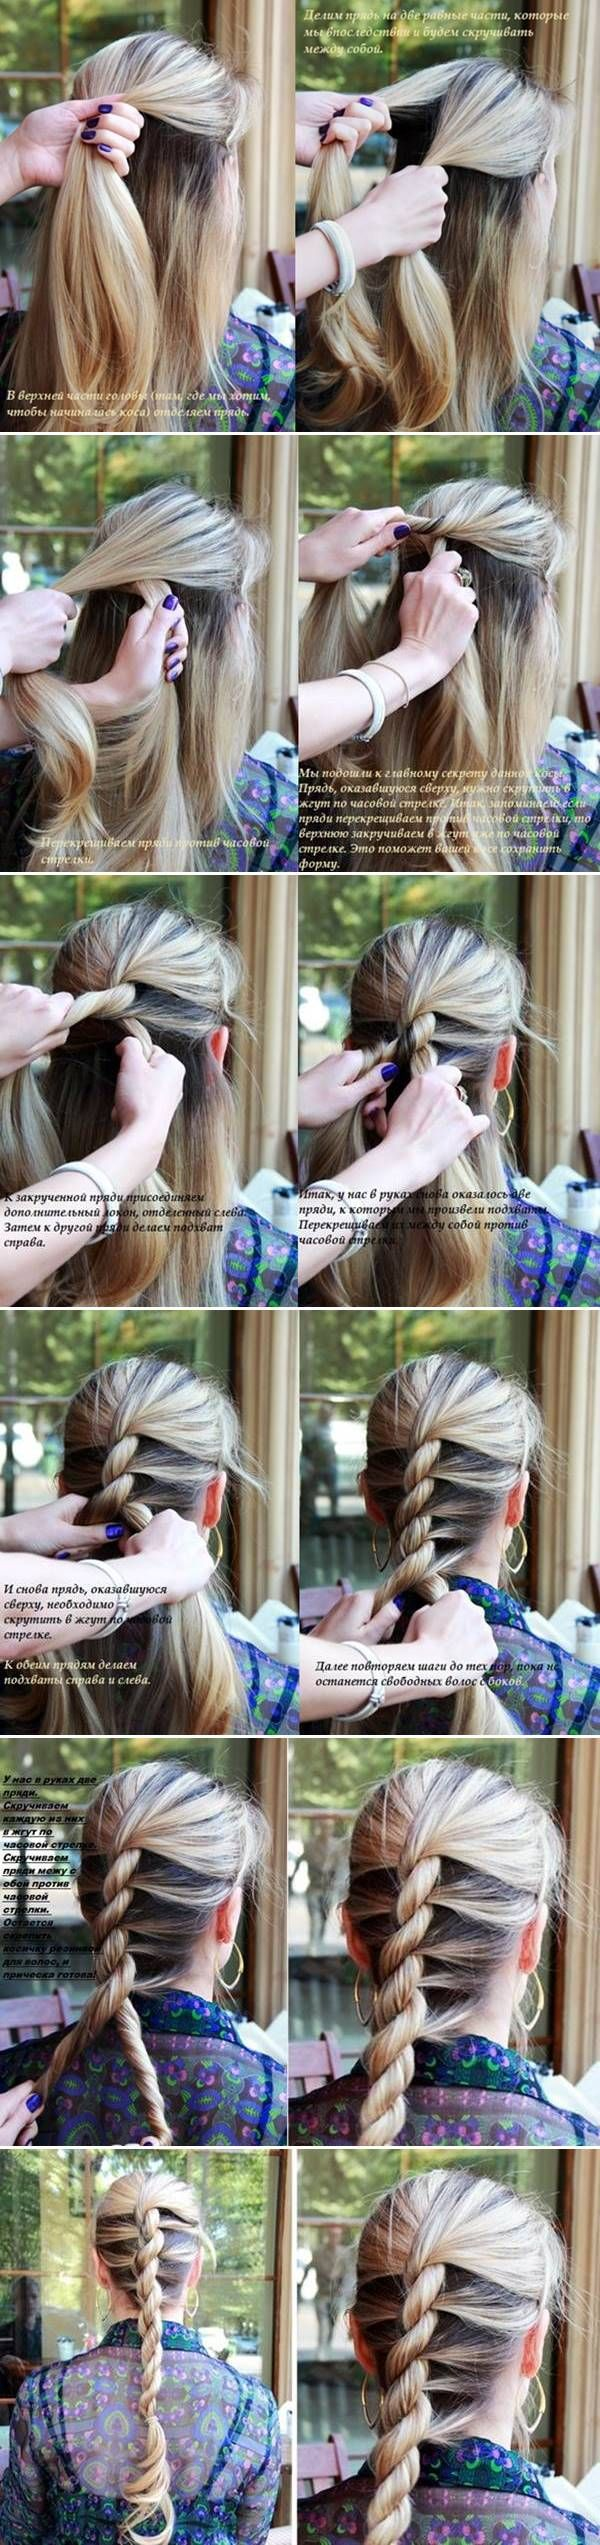 How to DIY Twisted Rope Braid Hairstyle #fashion #hairstyle                                                                                                                                                                                 More